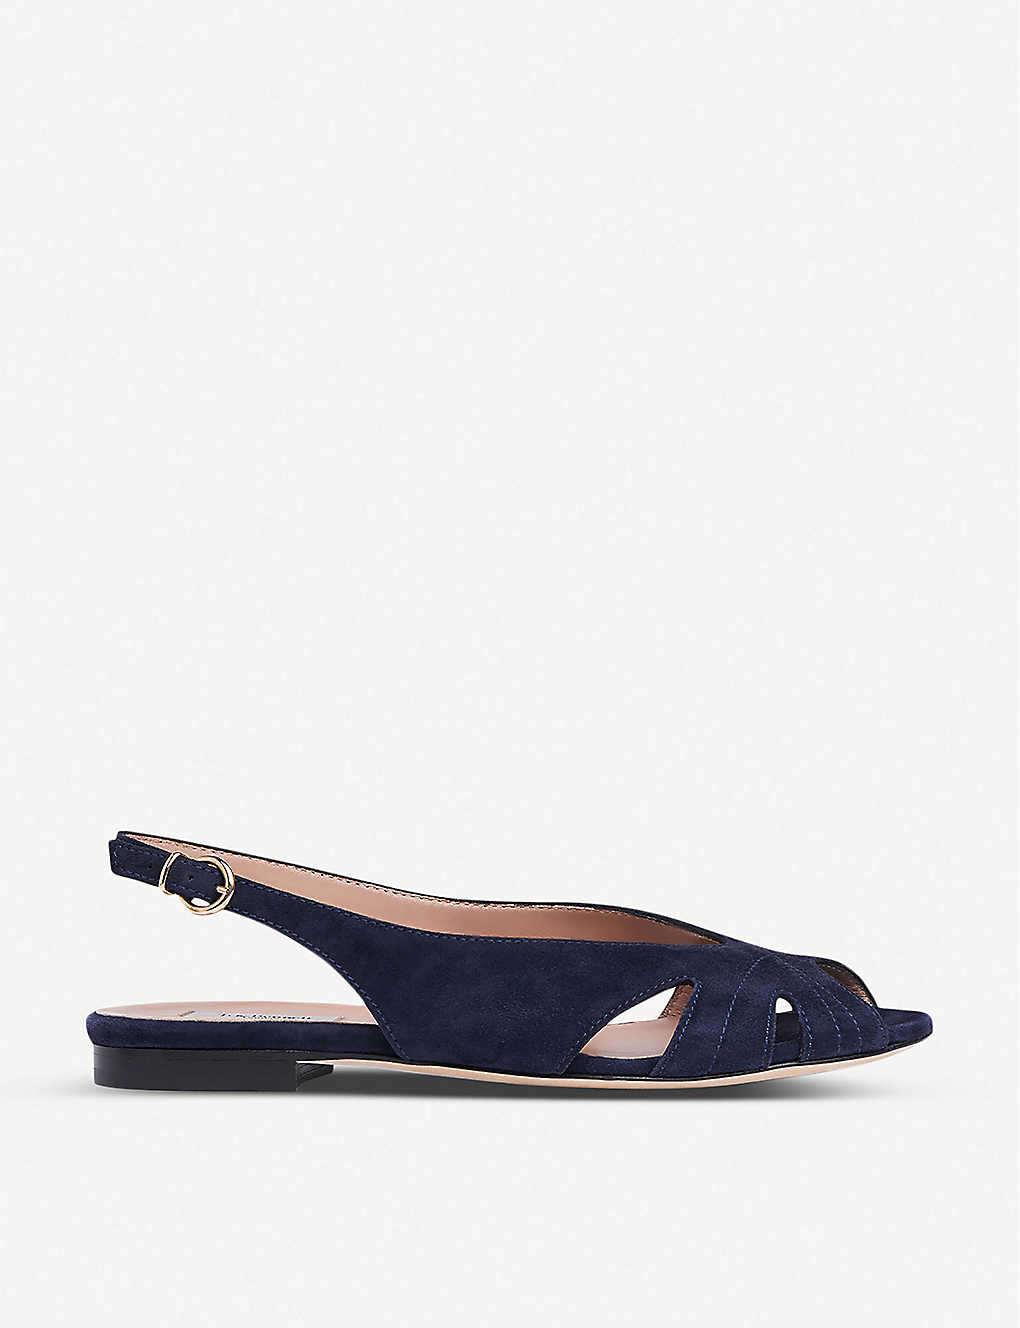 LK BENNETT: Rome cut-out leather slingback sandals